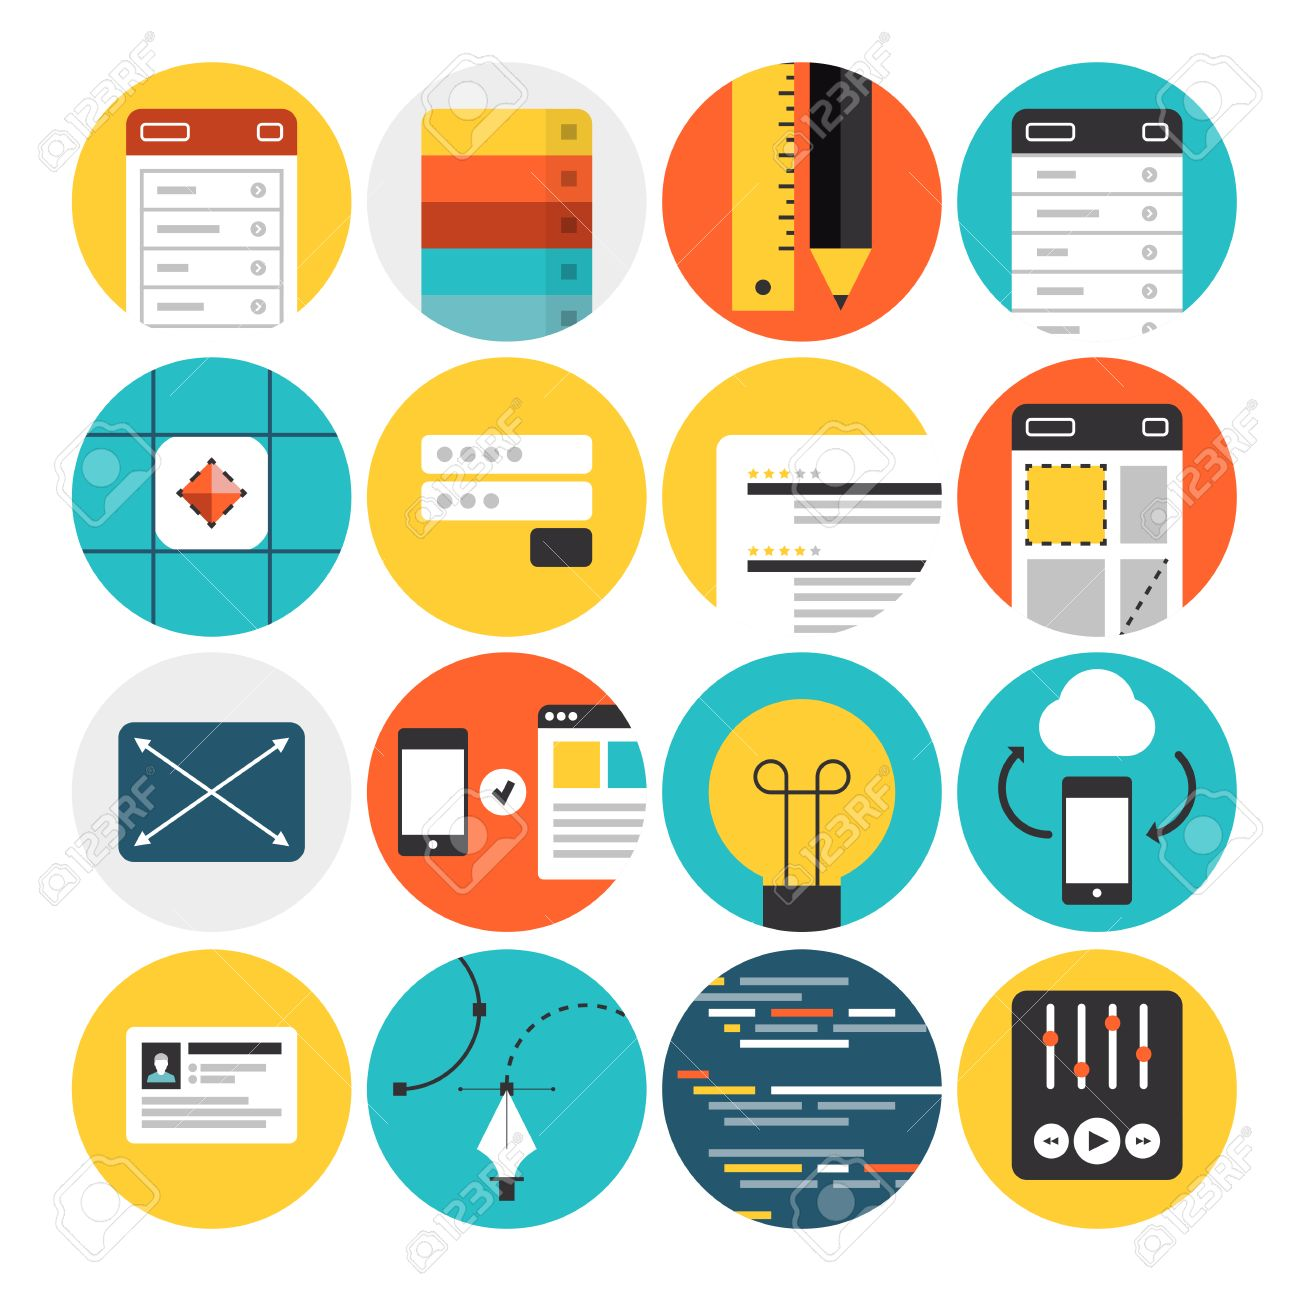 Flat icons set of web design and website development process, mobile user interface prototyping, graphic design sketching workflow. Flat design modern vector illustration concept. Isolated on white background. Stock Vector - 28993066